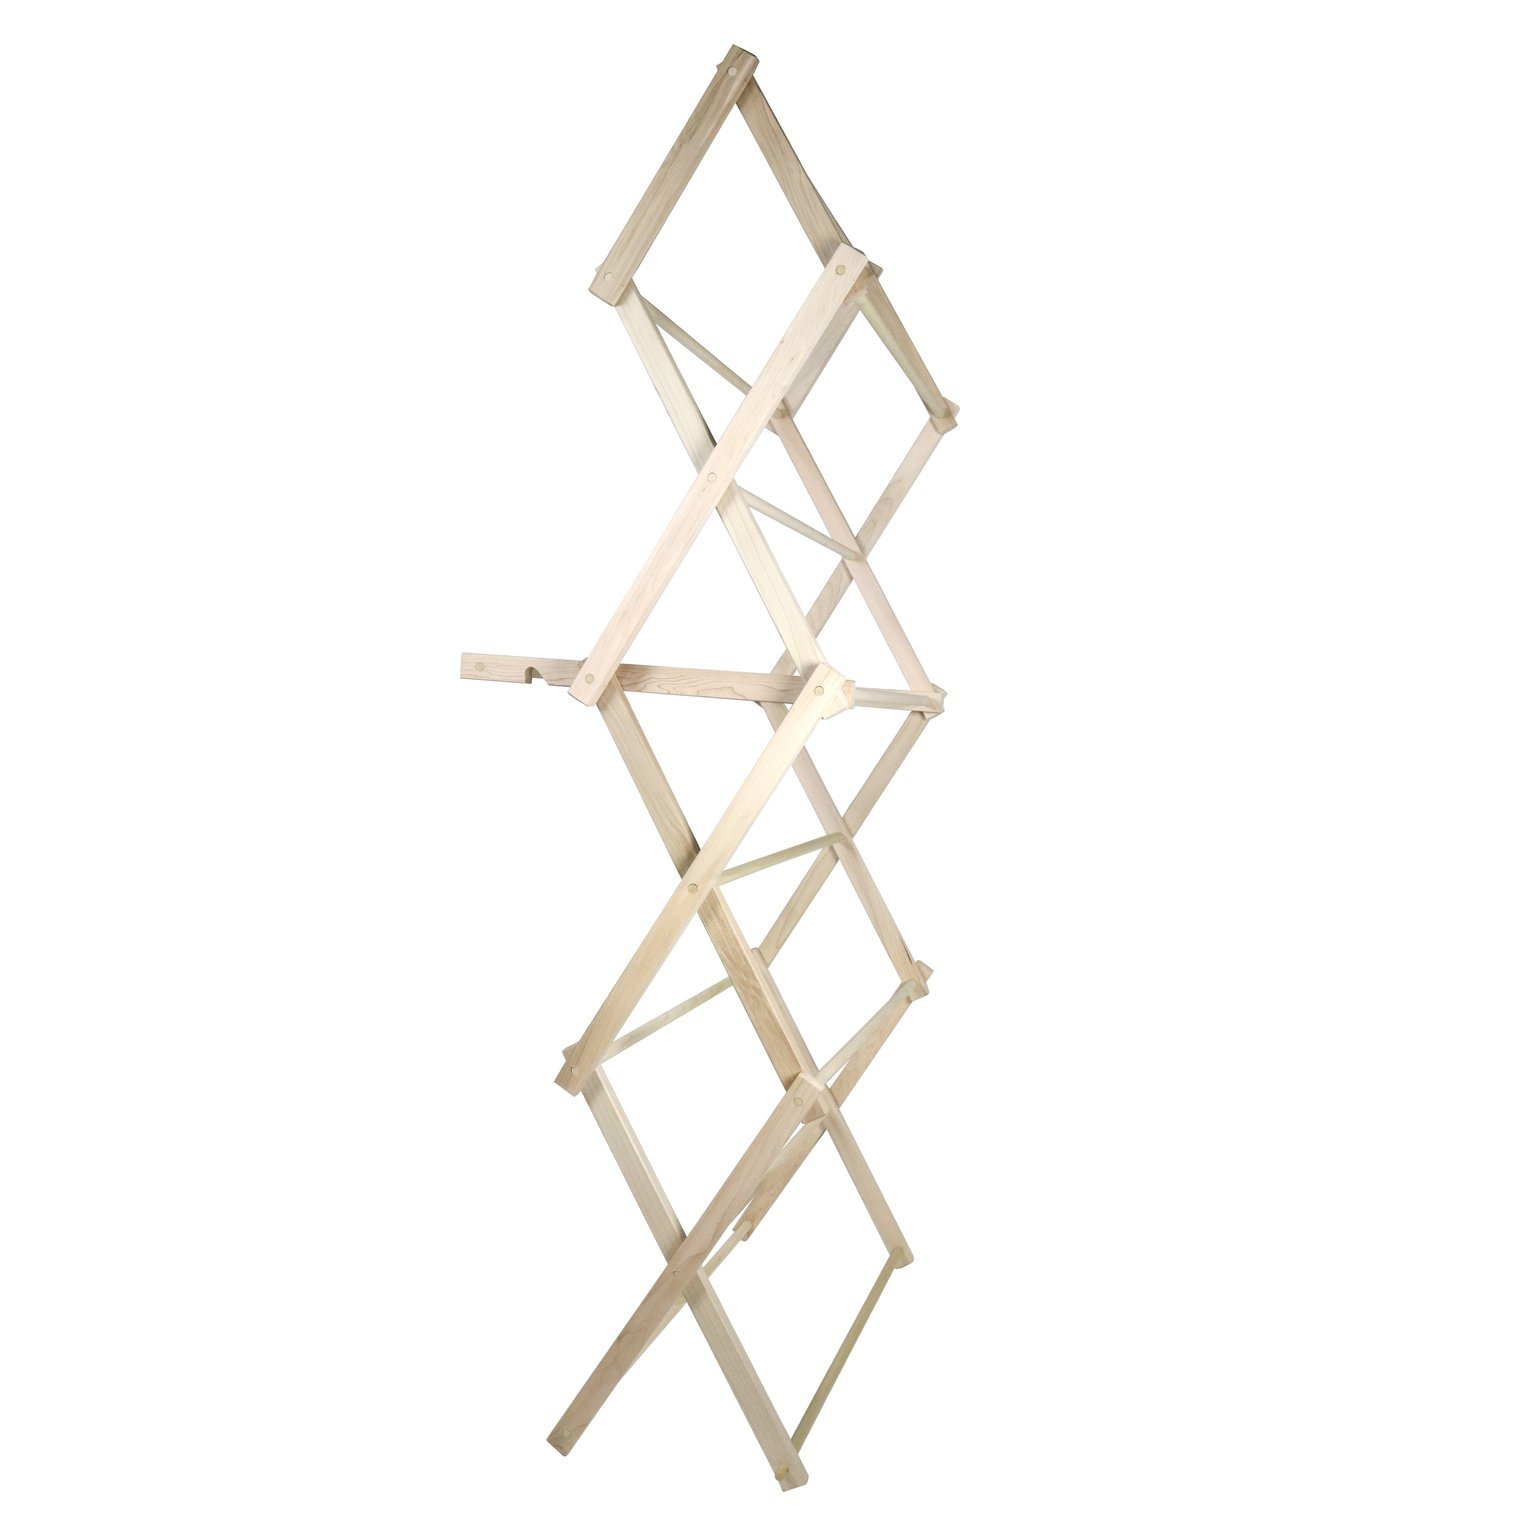 """LifeSong Milestones American Made Clothes Drying Rack Collapsible Folding Two Height Wooden Quilt Rack 36'' x 28'' x 7.5"""" 100% hardwood Made in the USA (36'')"""